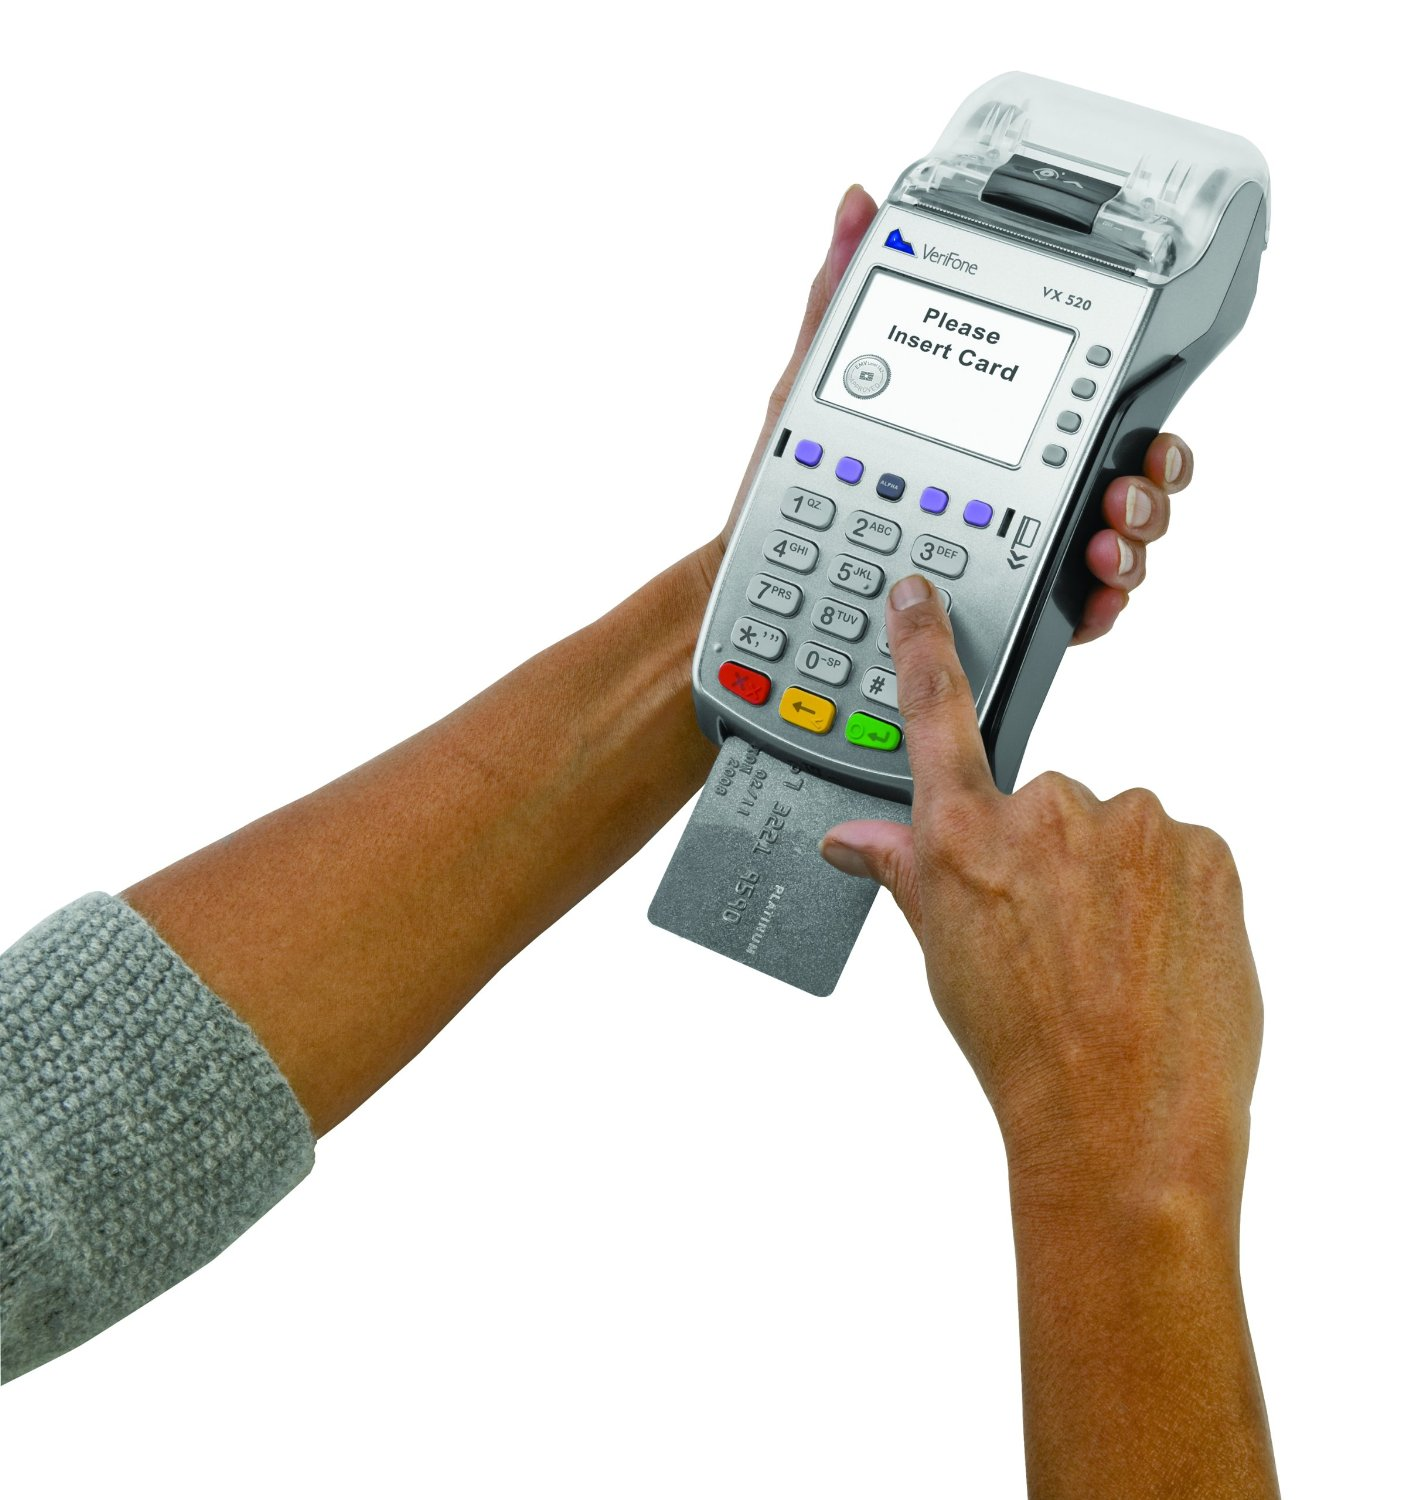 VX520 EMV Terminal credit card processing